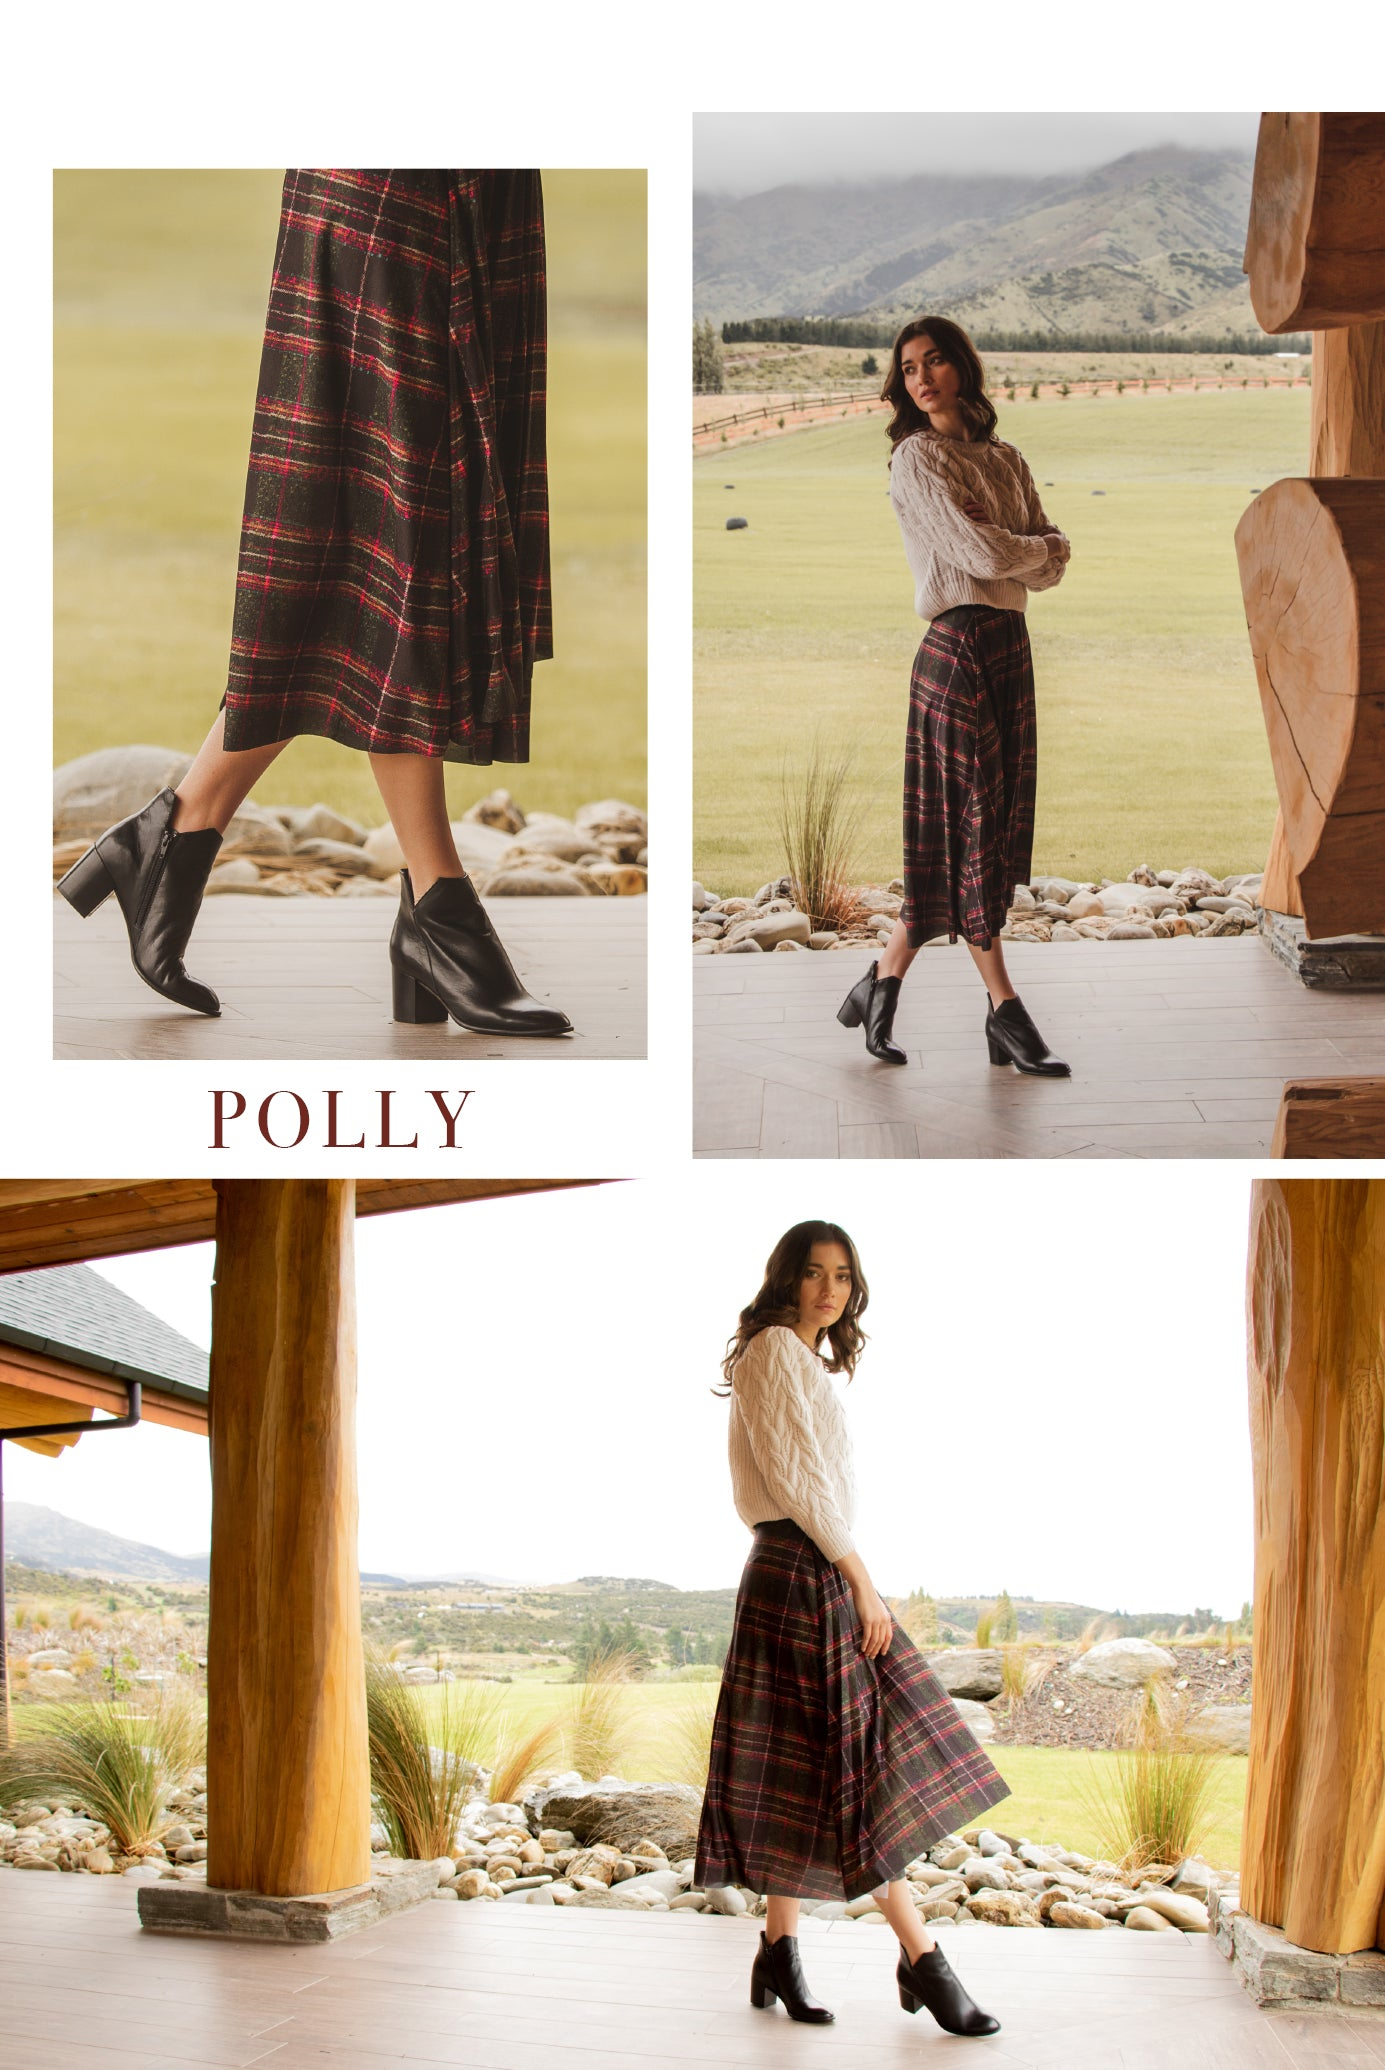 Polly Boots Eos Footwear